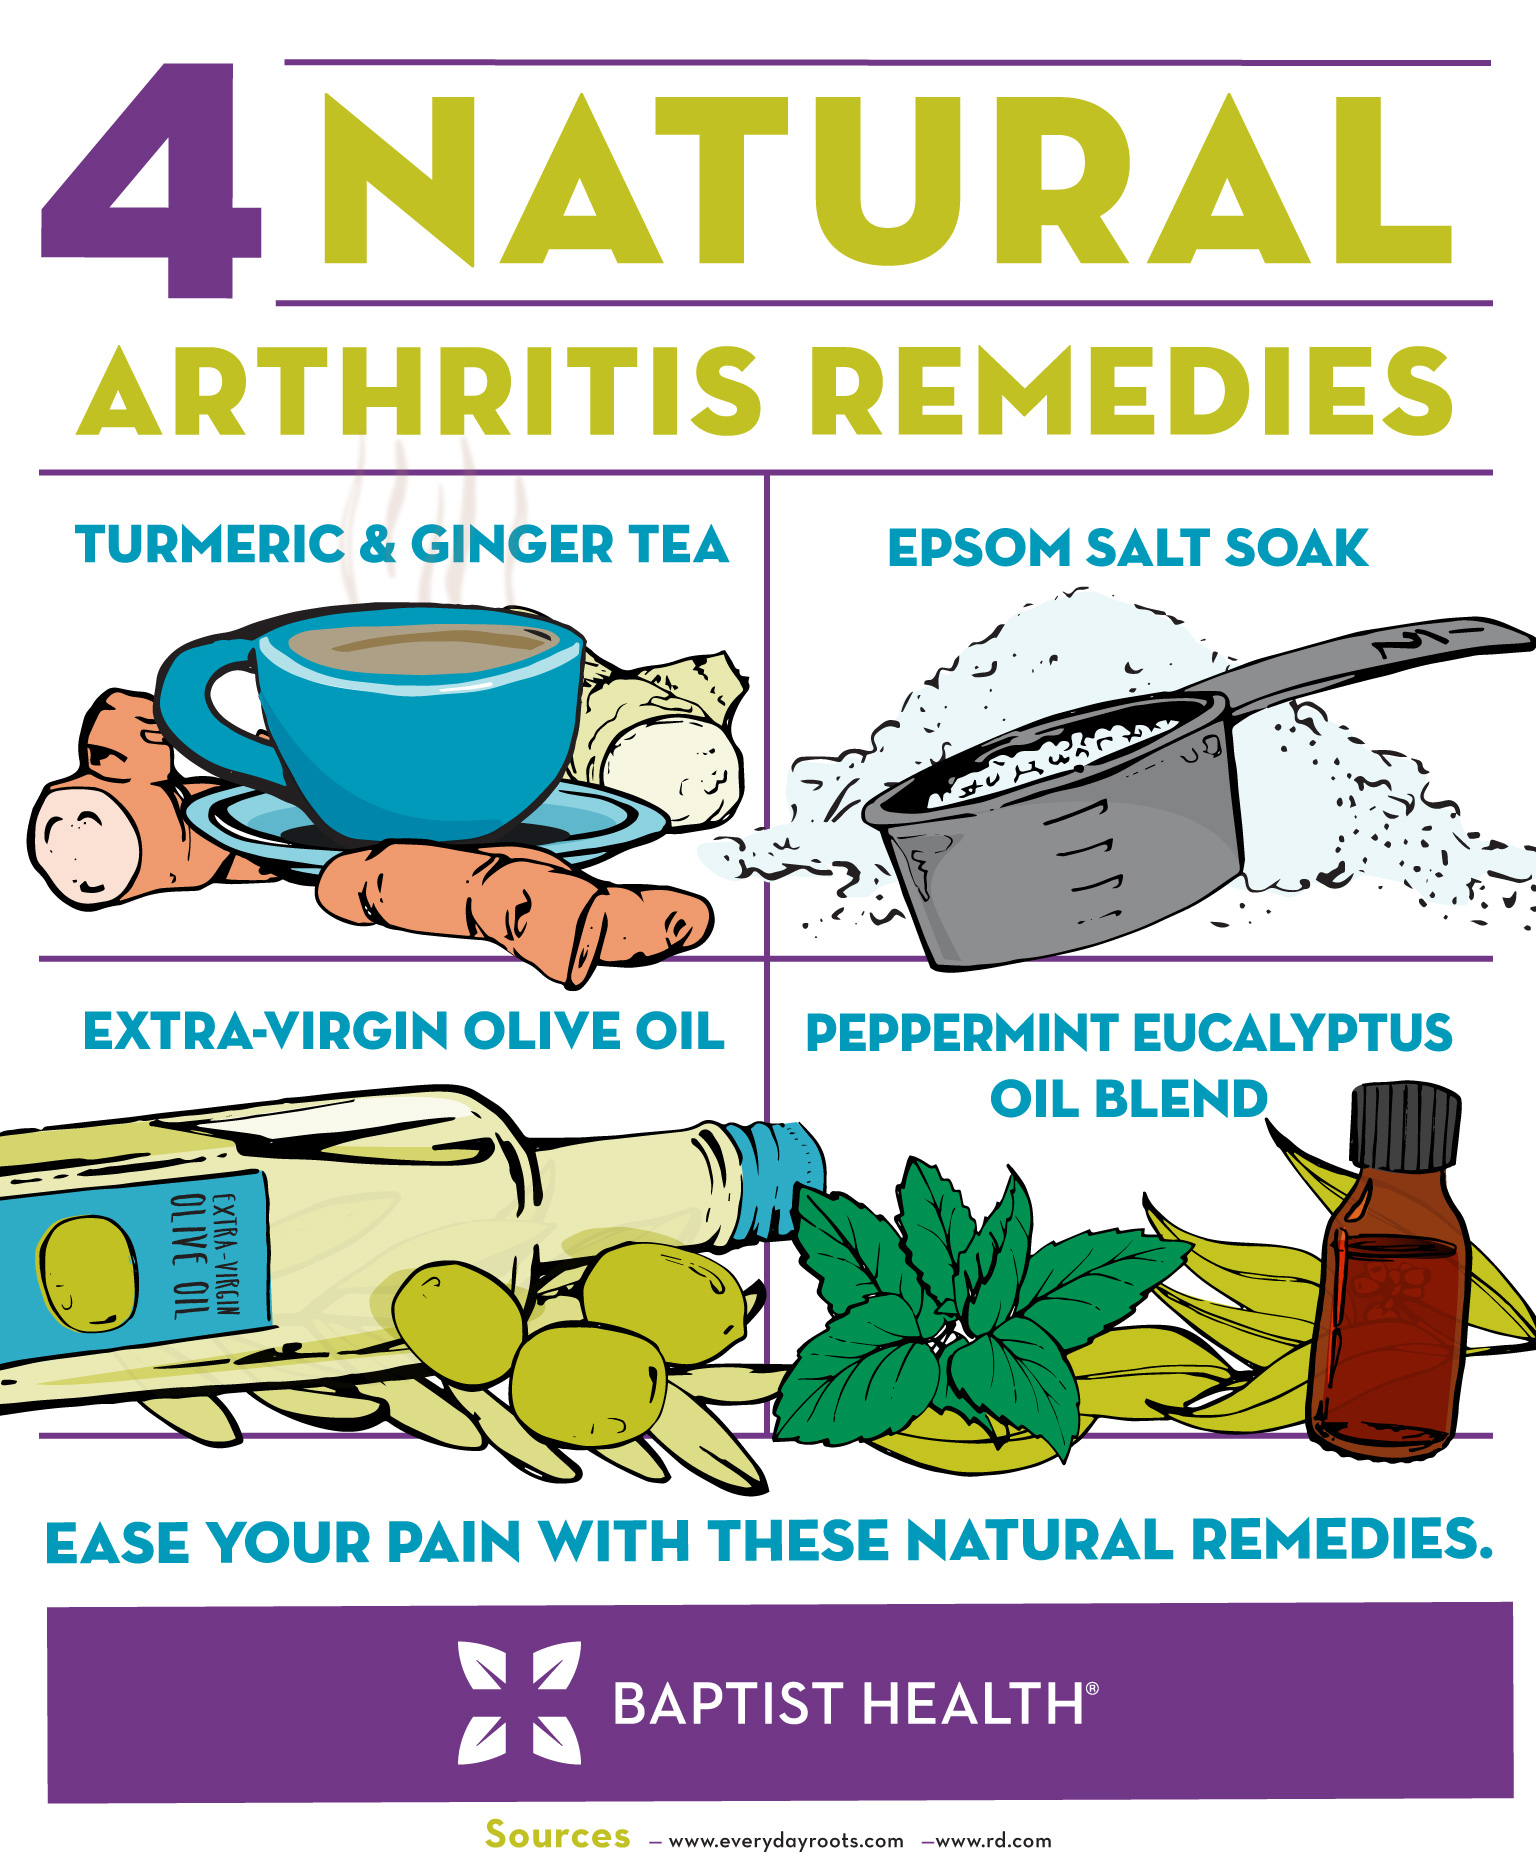 Infographic-Natural-Remedies-Arthritis